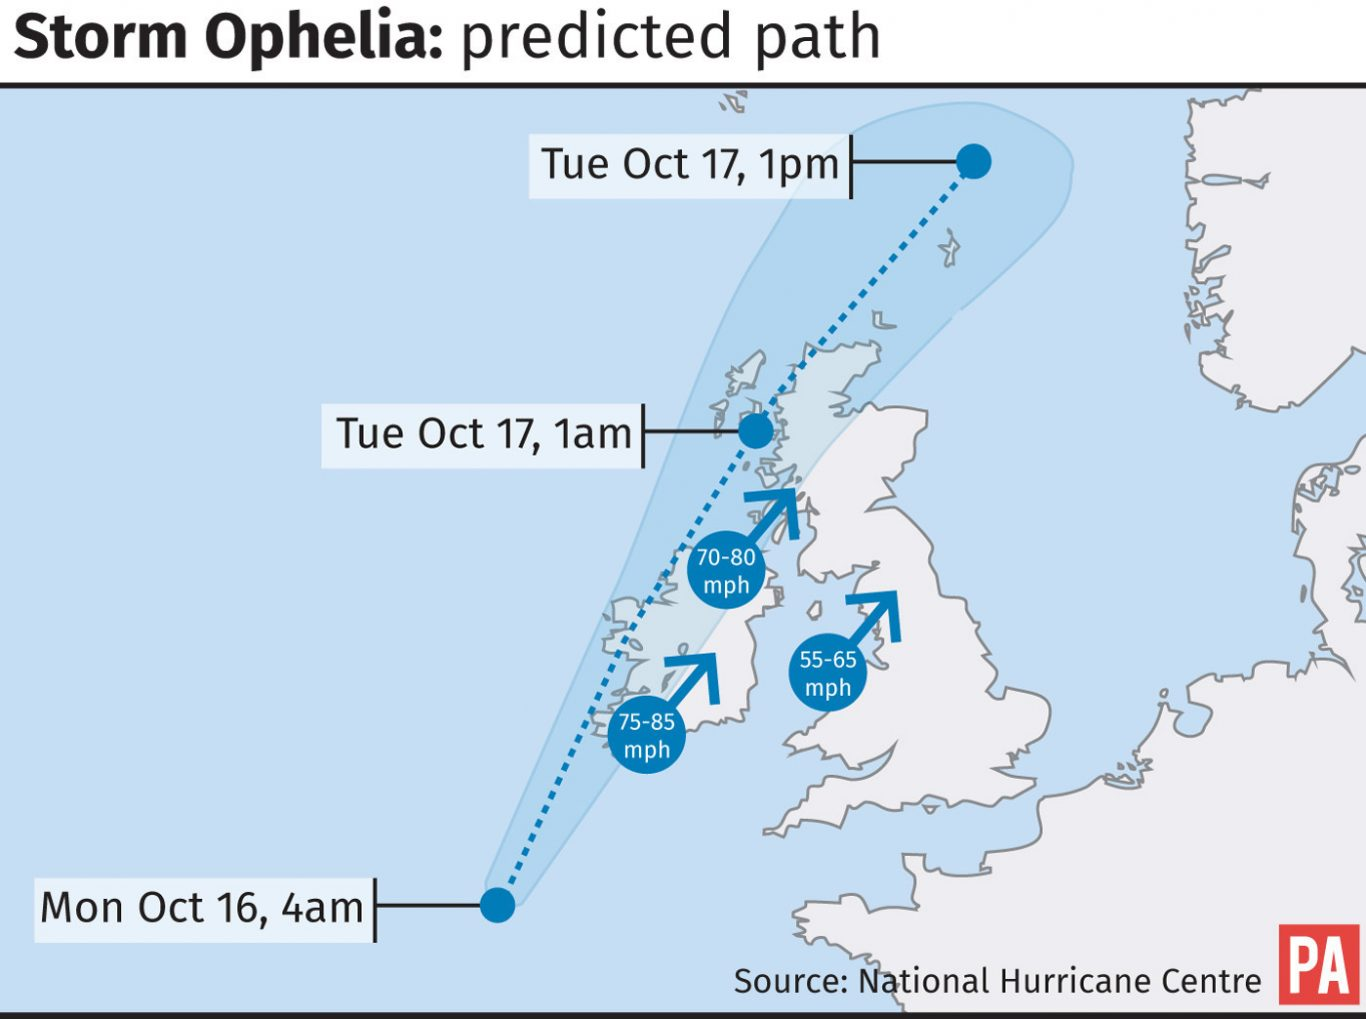 Storm Ophelia predicted path